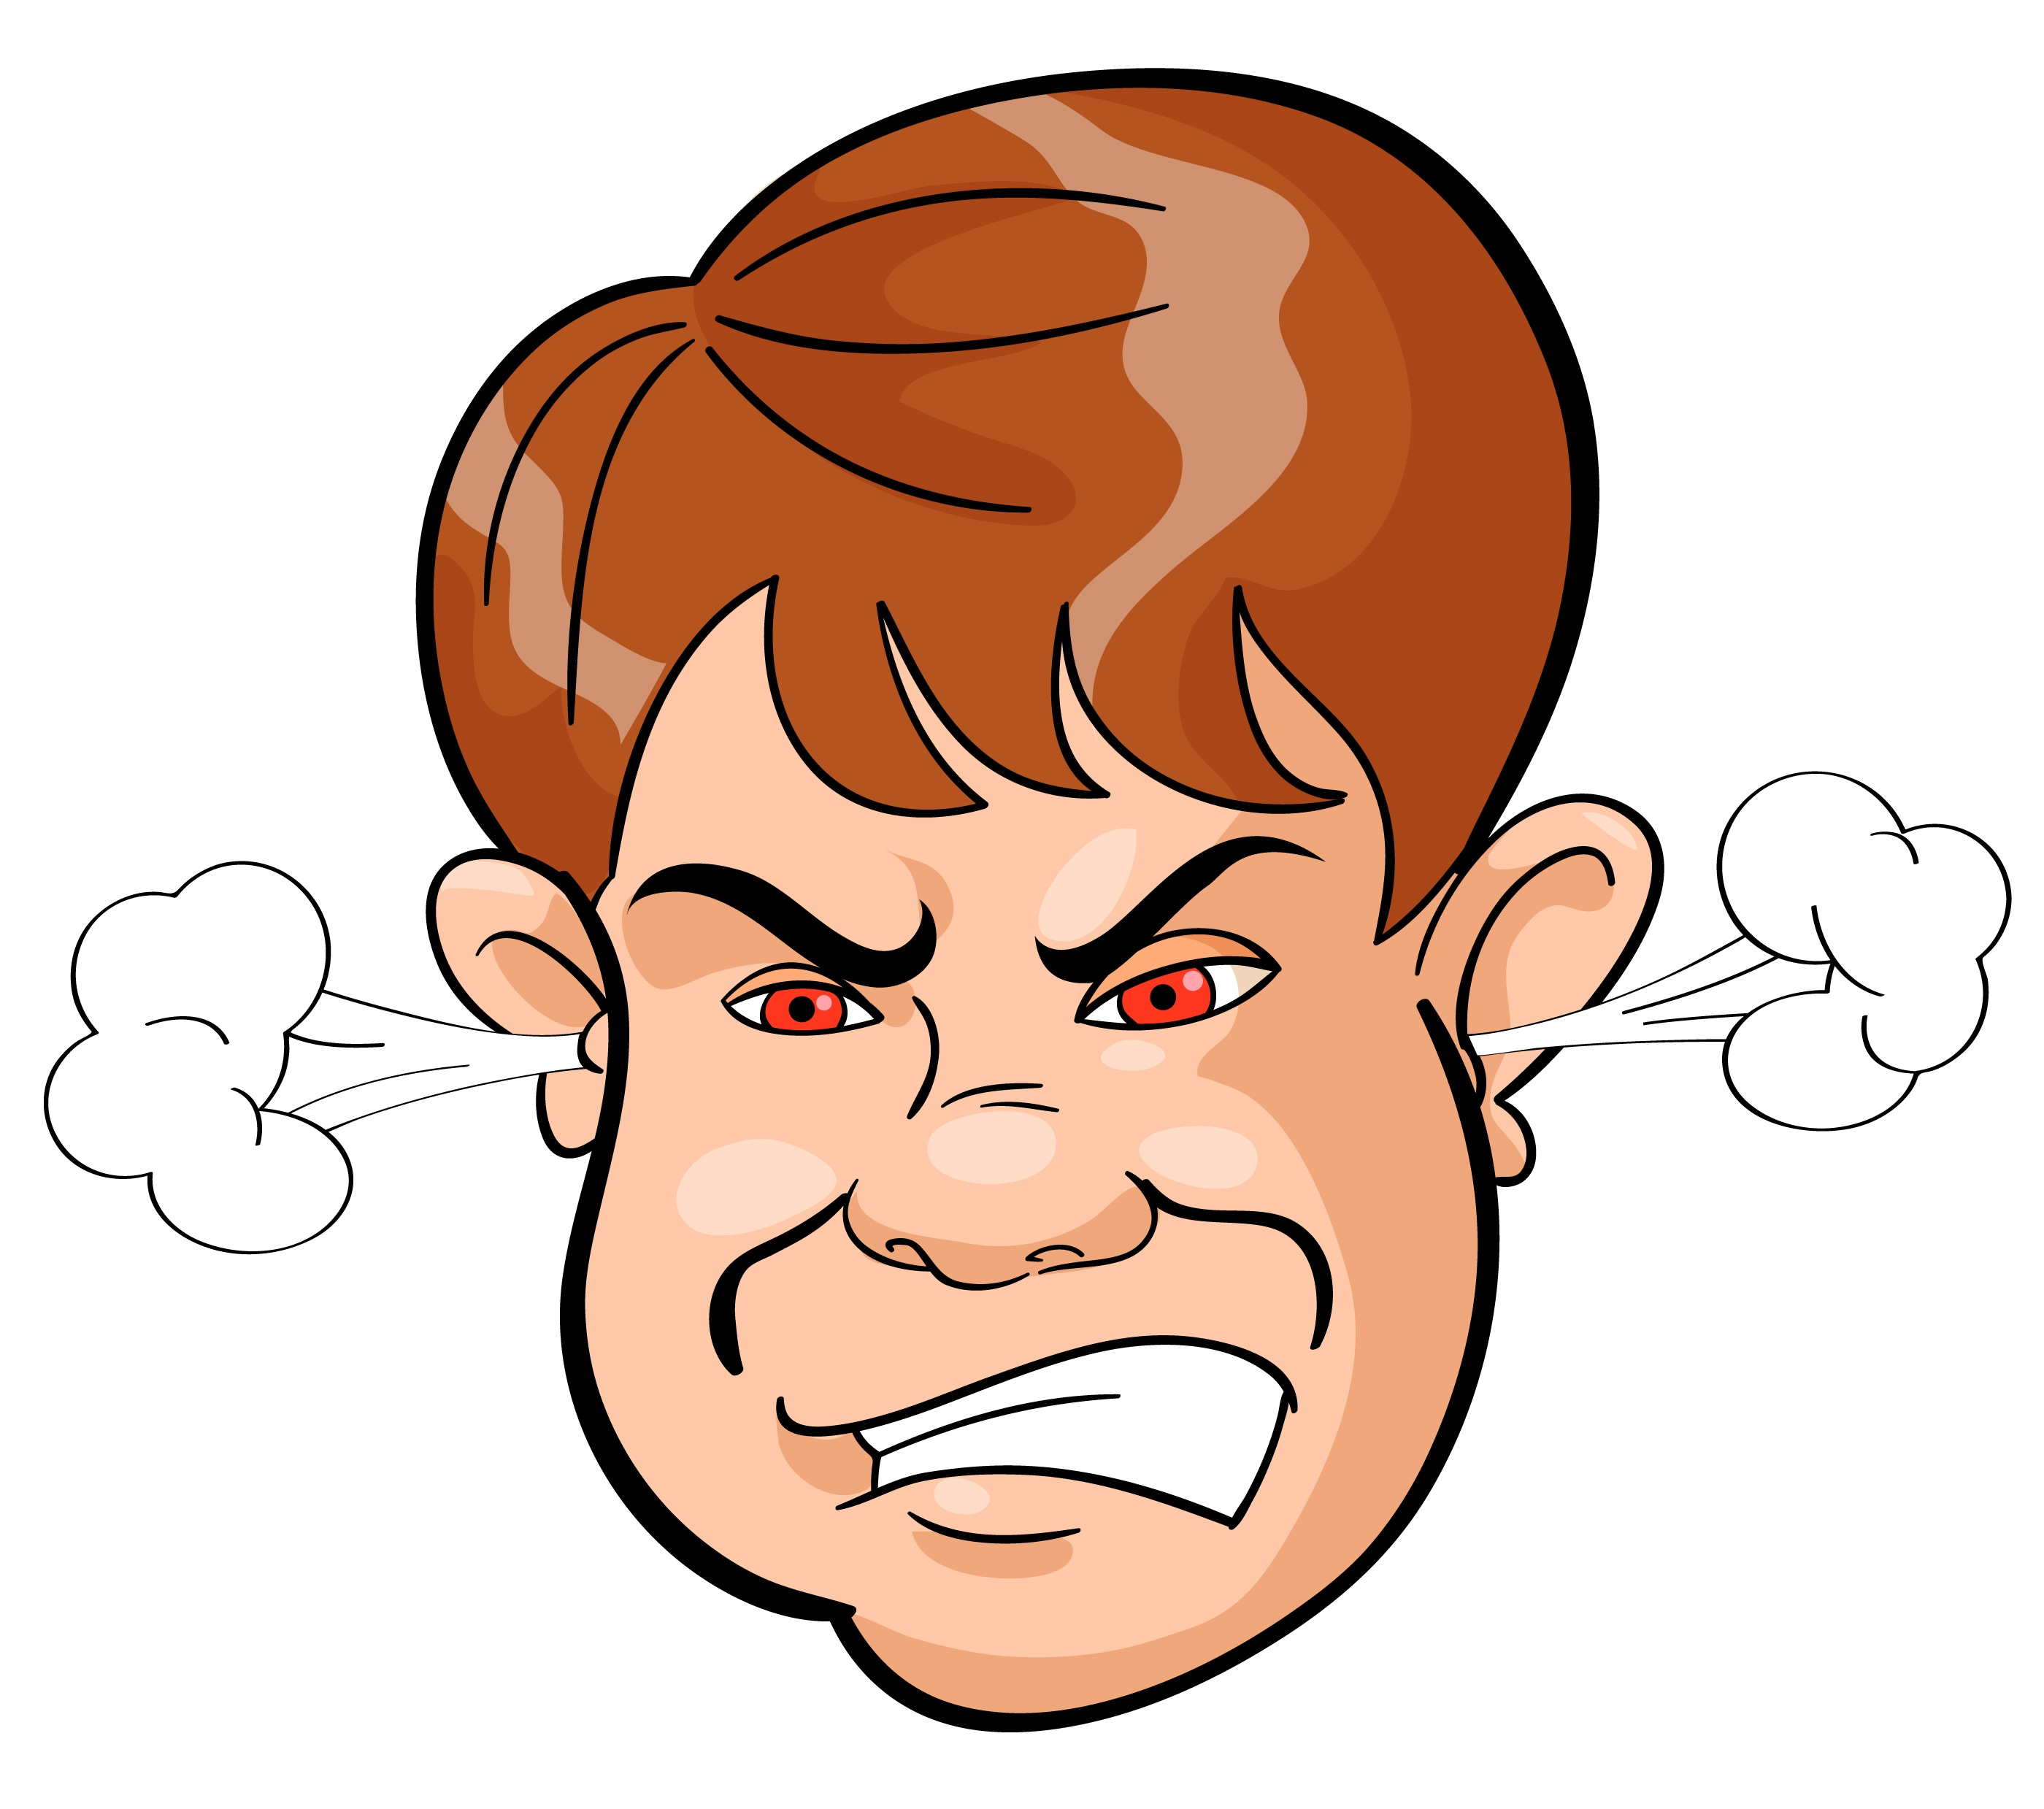 Anger clipart anger management. Best of collection digital